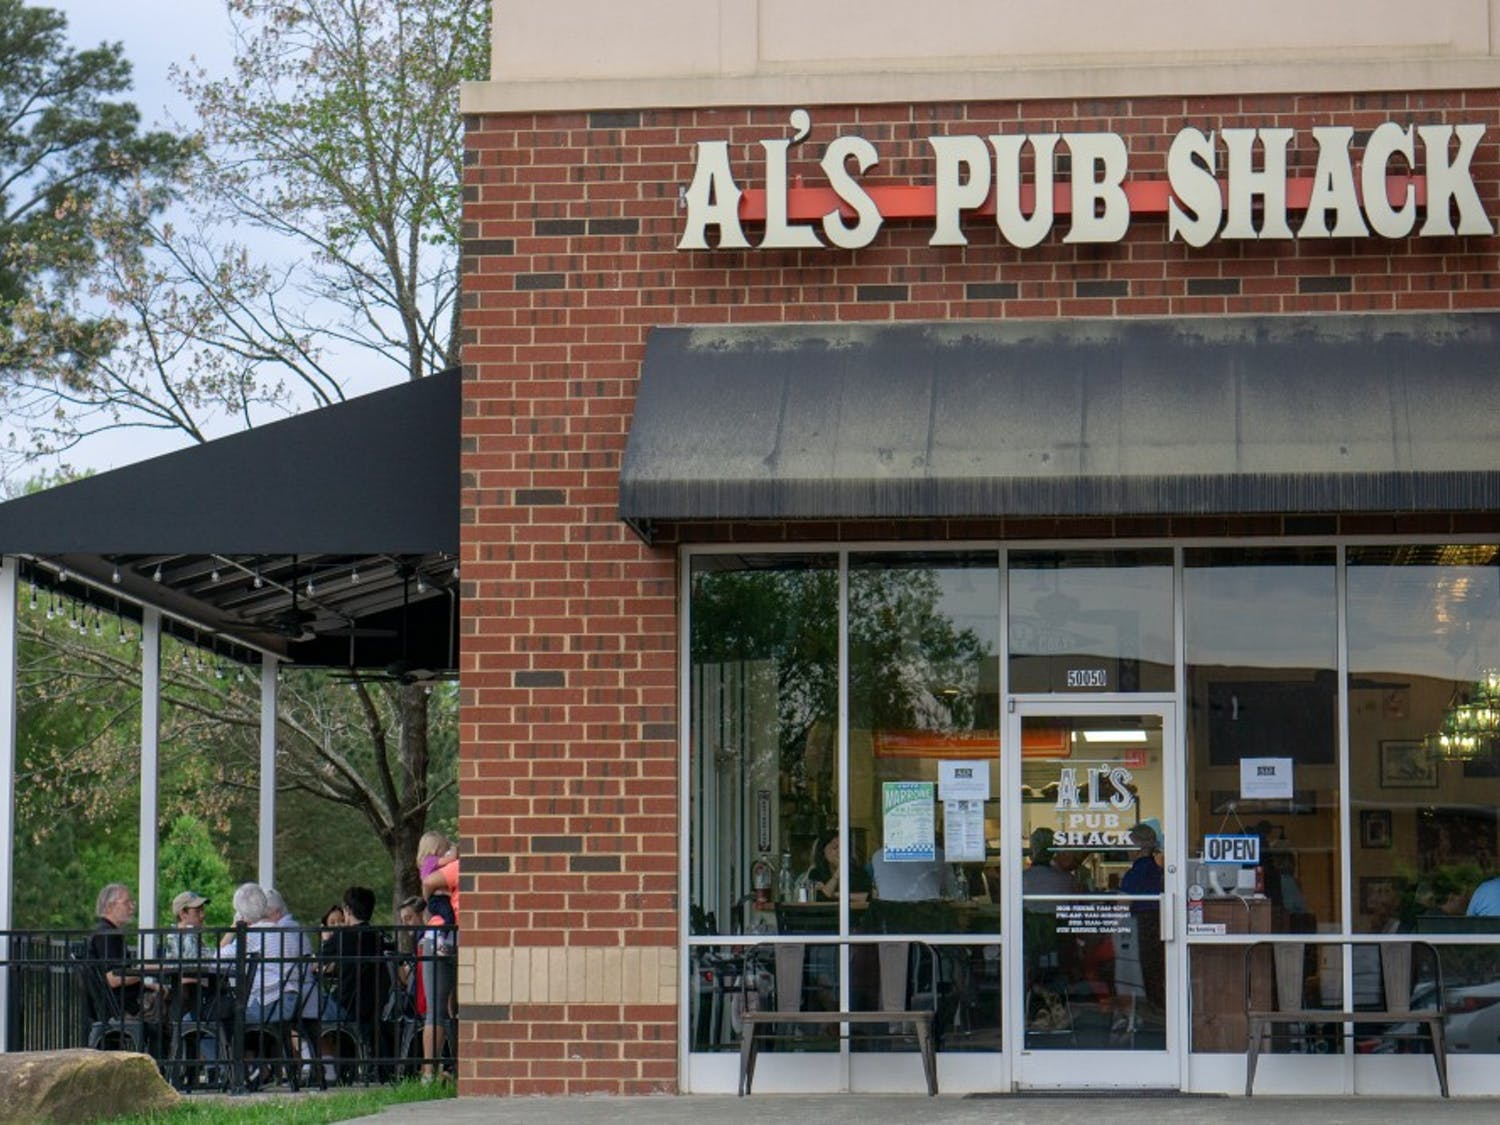 """Al's Pub Shack is now open to the public. Heather Kumnick, director of development, said, """"This is a place where old friends gather and new friends meet."""""""